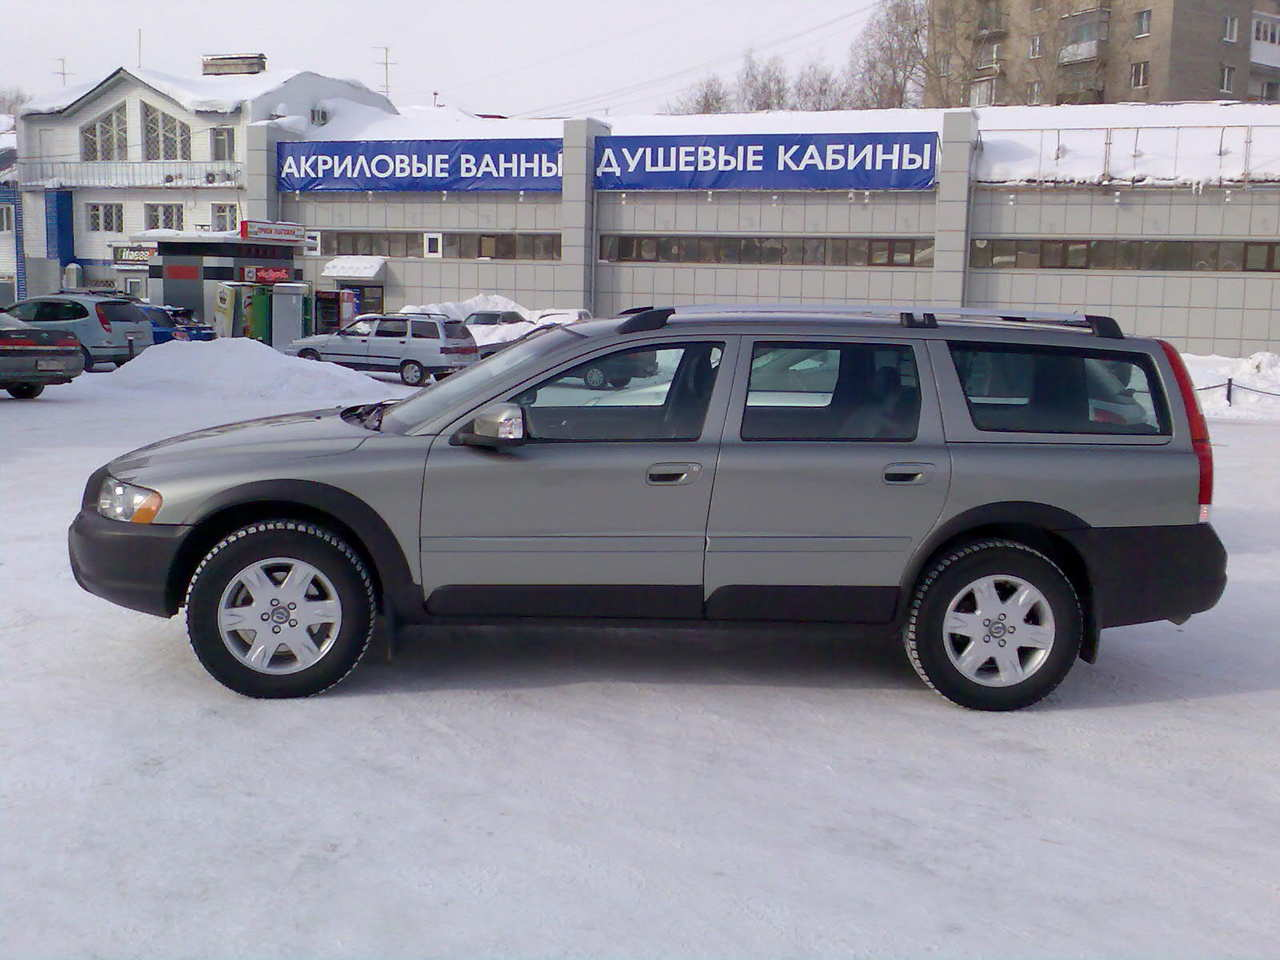 2007 volvo xc70 pictures gasoline automatic for sale. Black Bedroom Furniture Sets. Home Design Ideas